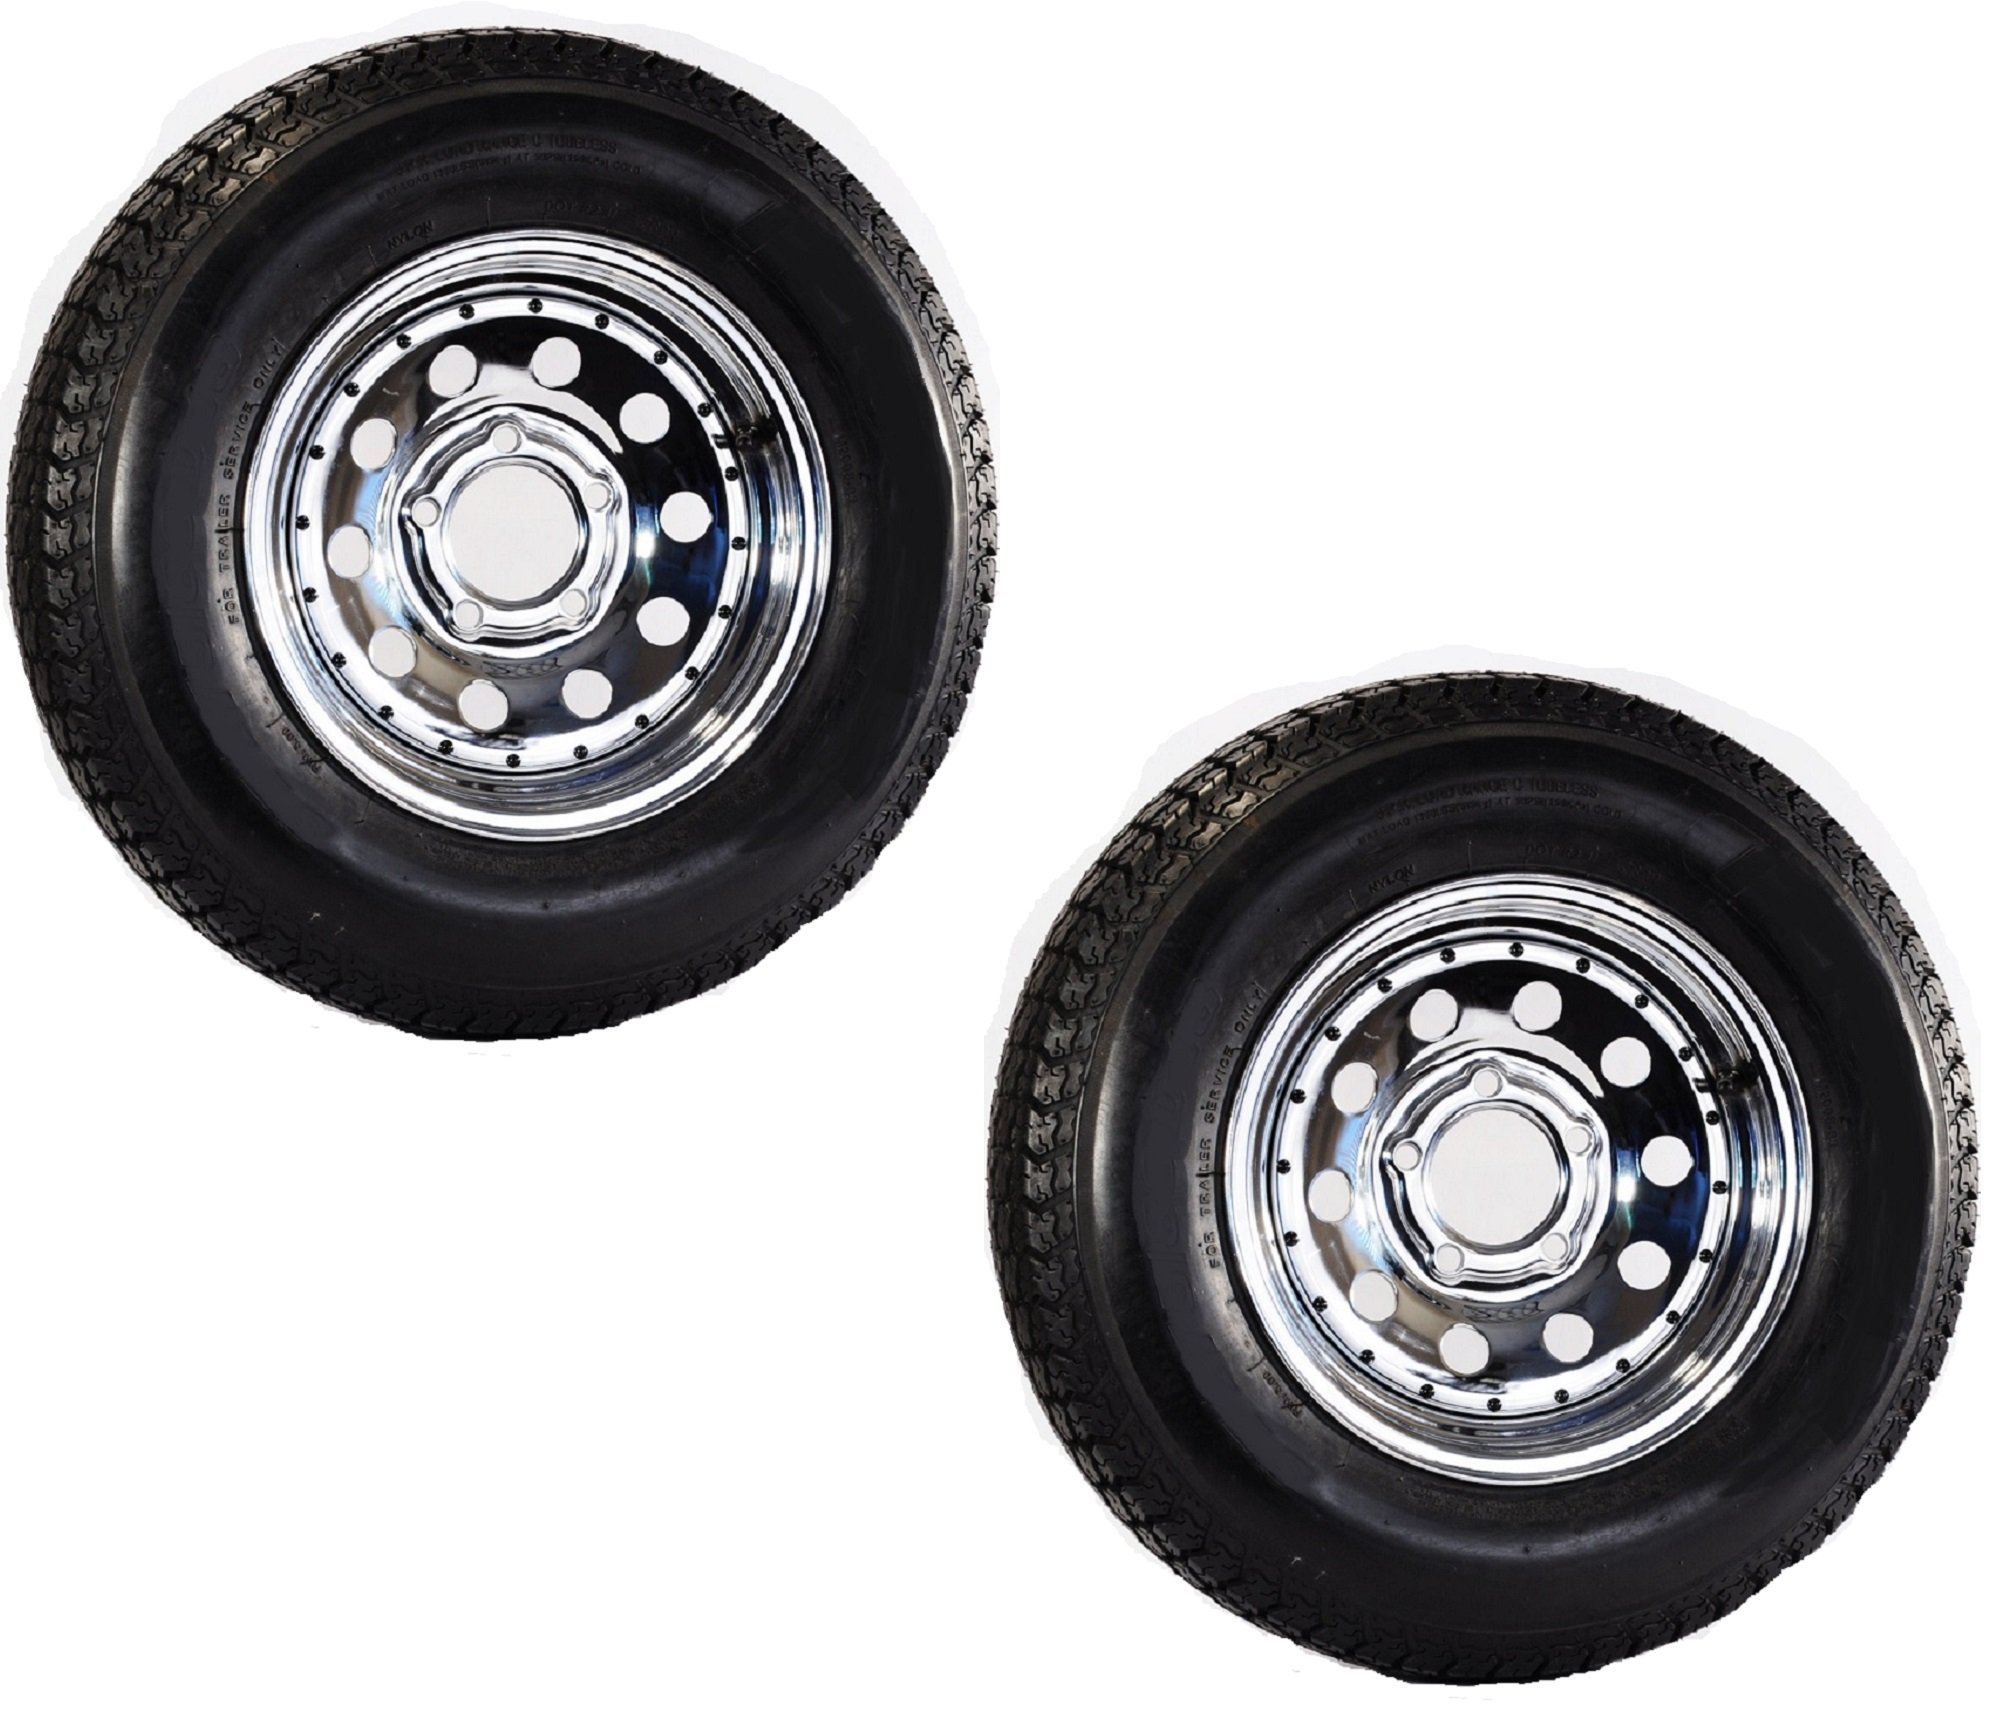 eCustomRim 2-Pack Mounted Trailer Tire Rim H188 ST205/75D14 14X6 5-4.5 Directional Chrome